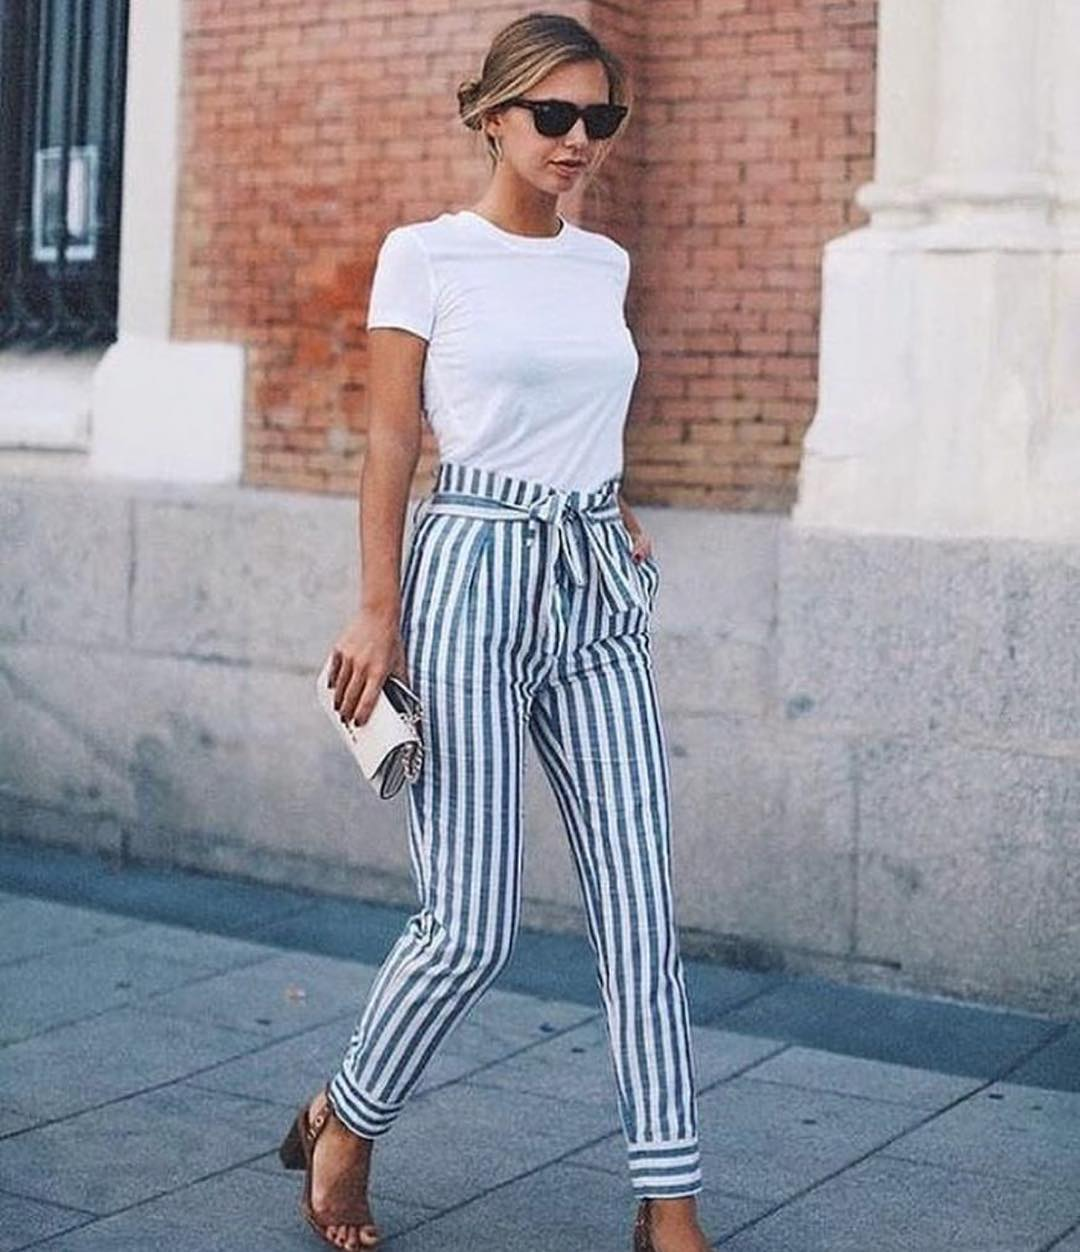 White Tee And Gathered High Rise Pinstripe Pants With Block Heel Sandals 2020